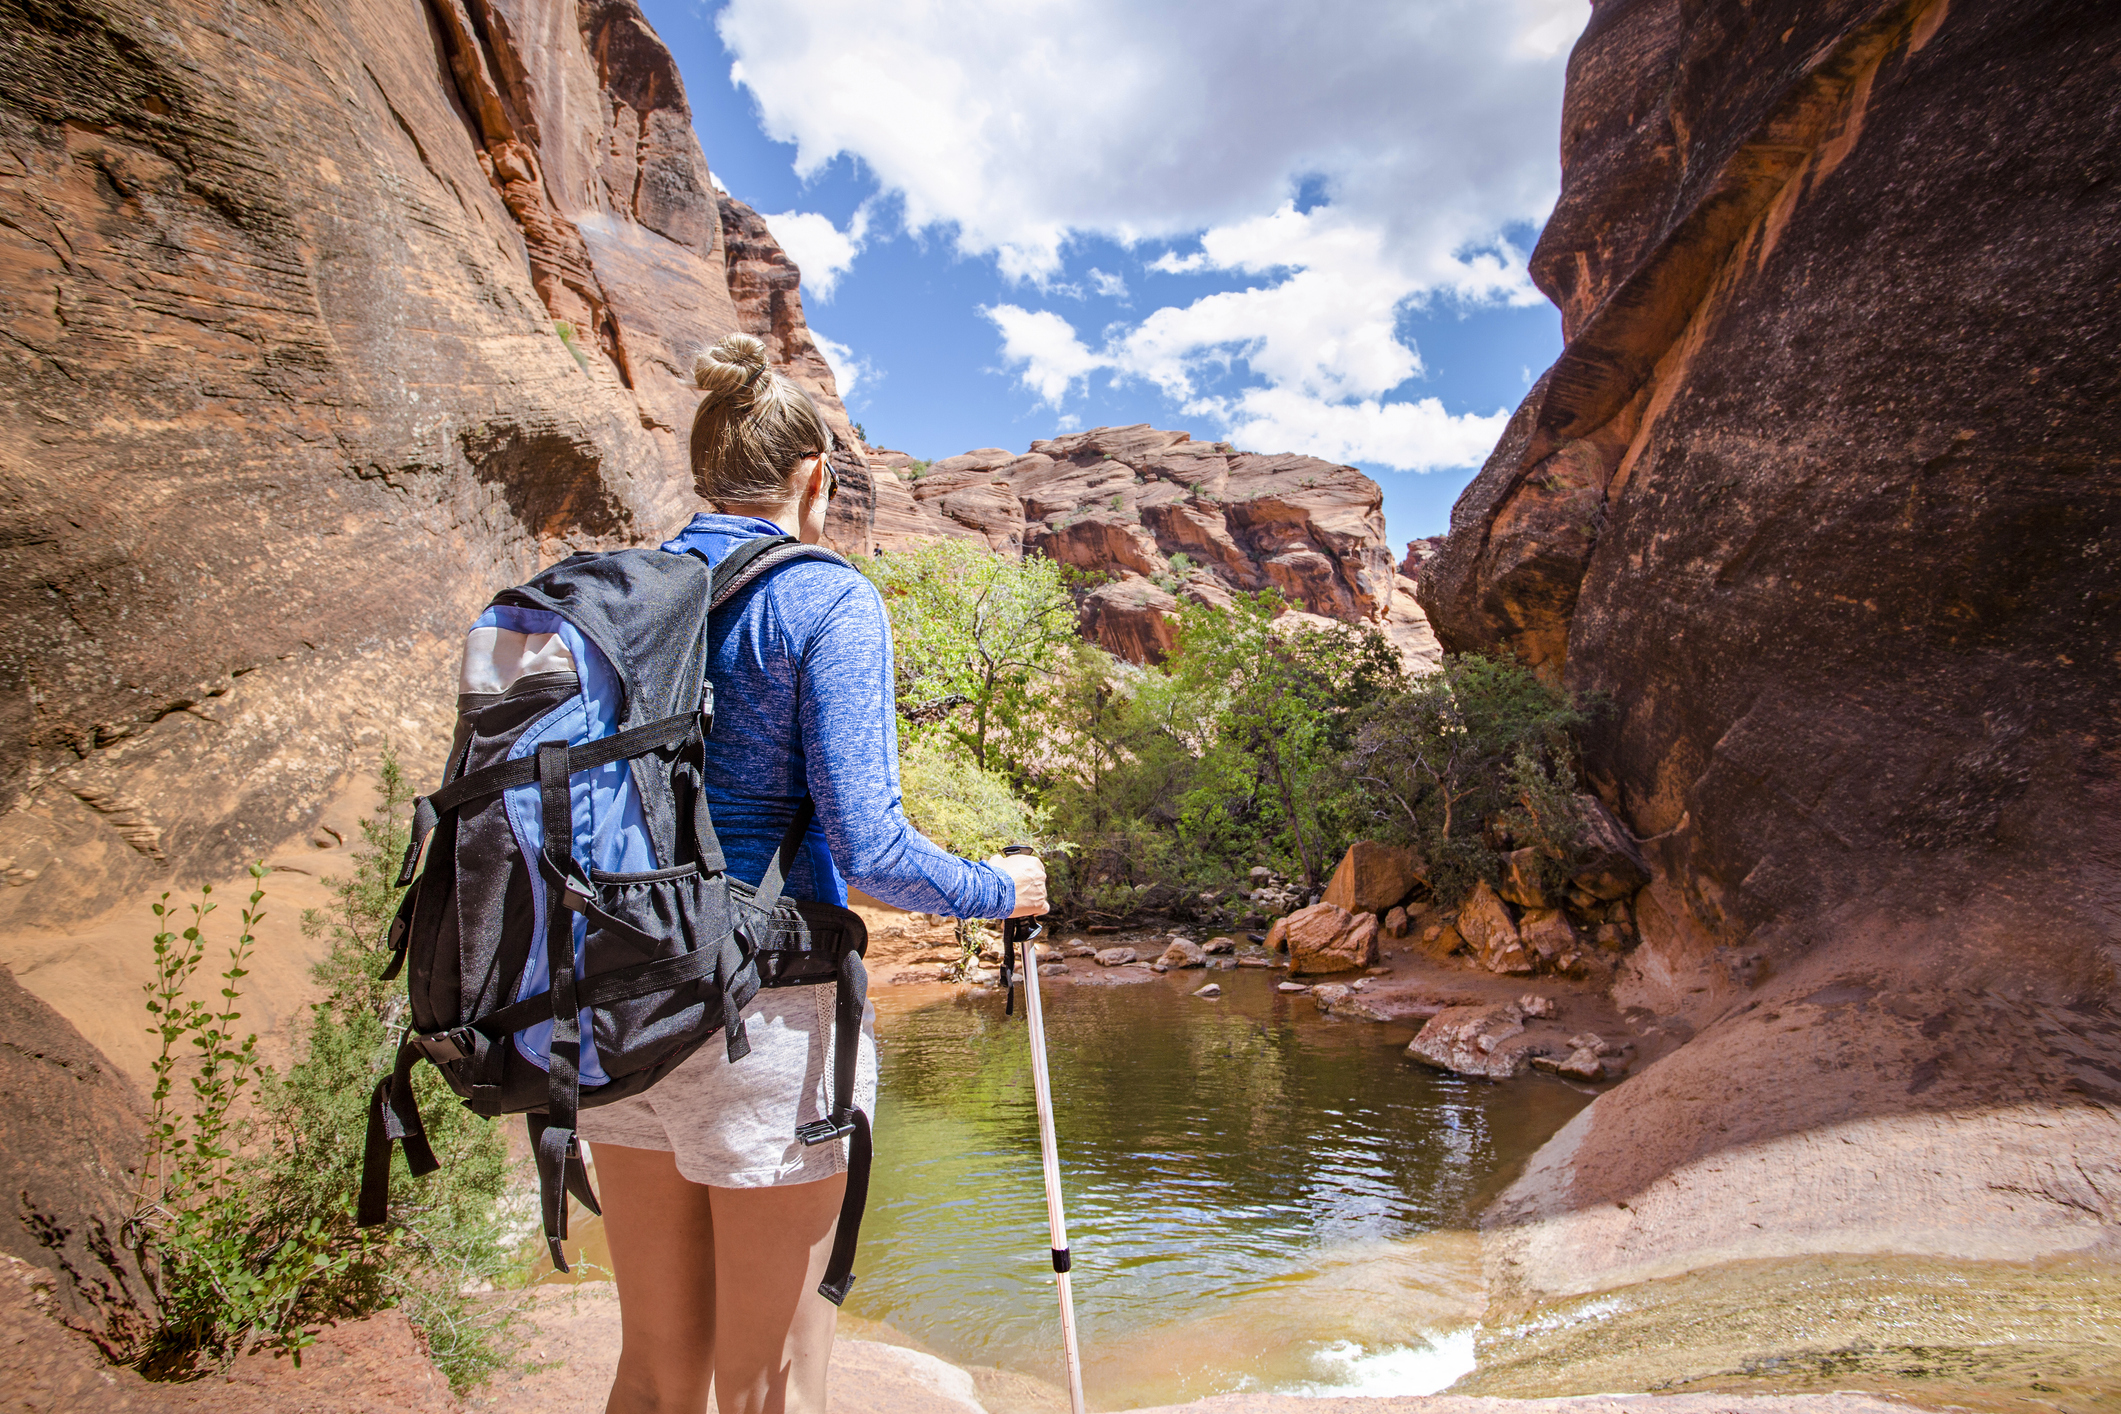 backpacking - Rear view of a Woman hiking to a waterfall in a red rock canyon. She is experiencing desert beauty in the United States. Looking down at this natural water slide in a slot canyon